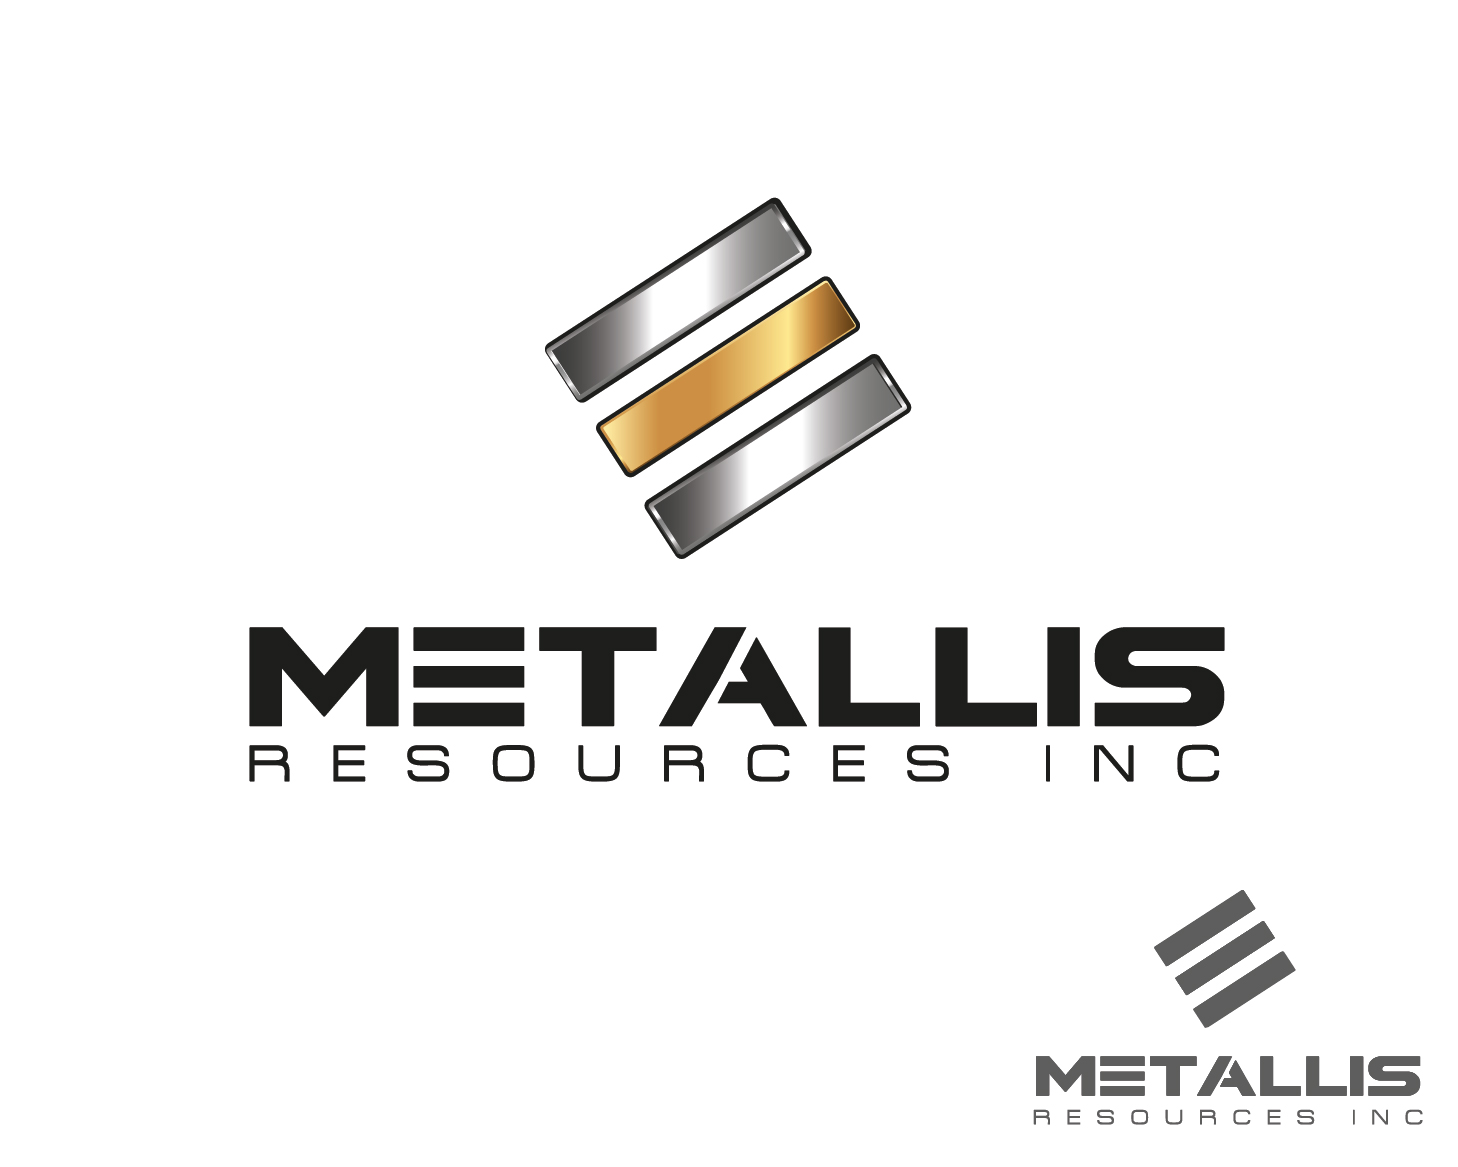 Logo Design by VENTSISLAV KOVACHEV - Entry No. 113 in the Logo Design Contest Metallis Resources Inc Logo Design.